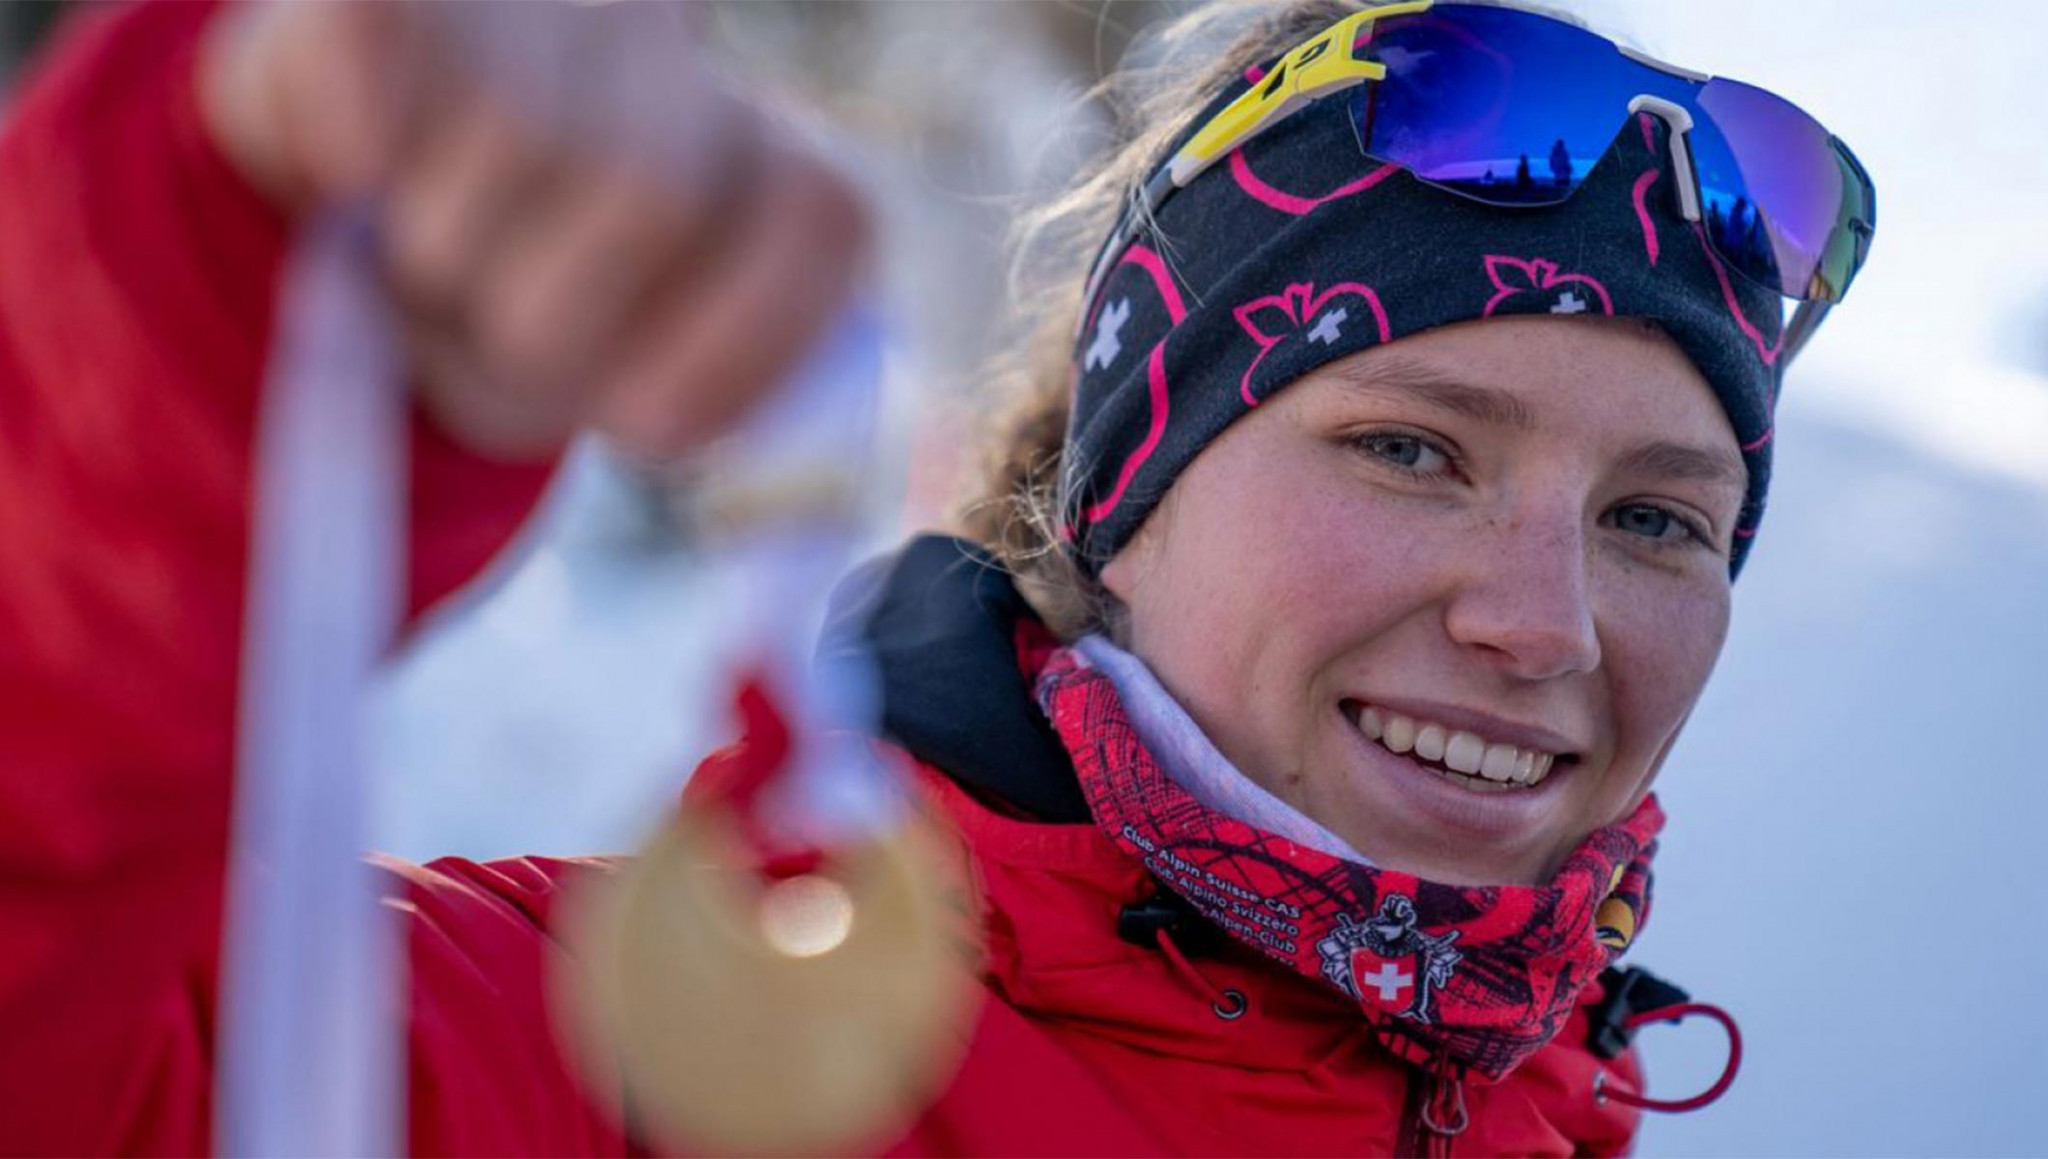 Swiss athlete claims ski mountaineering debut at Lausanne 2020 will raise profile of the sport